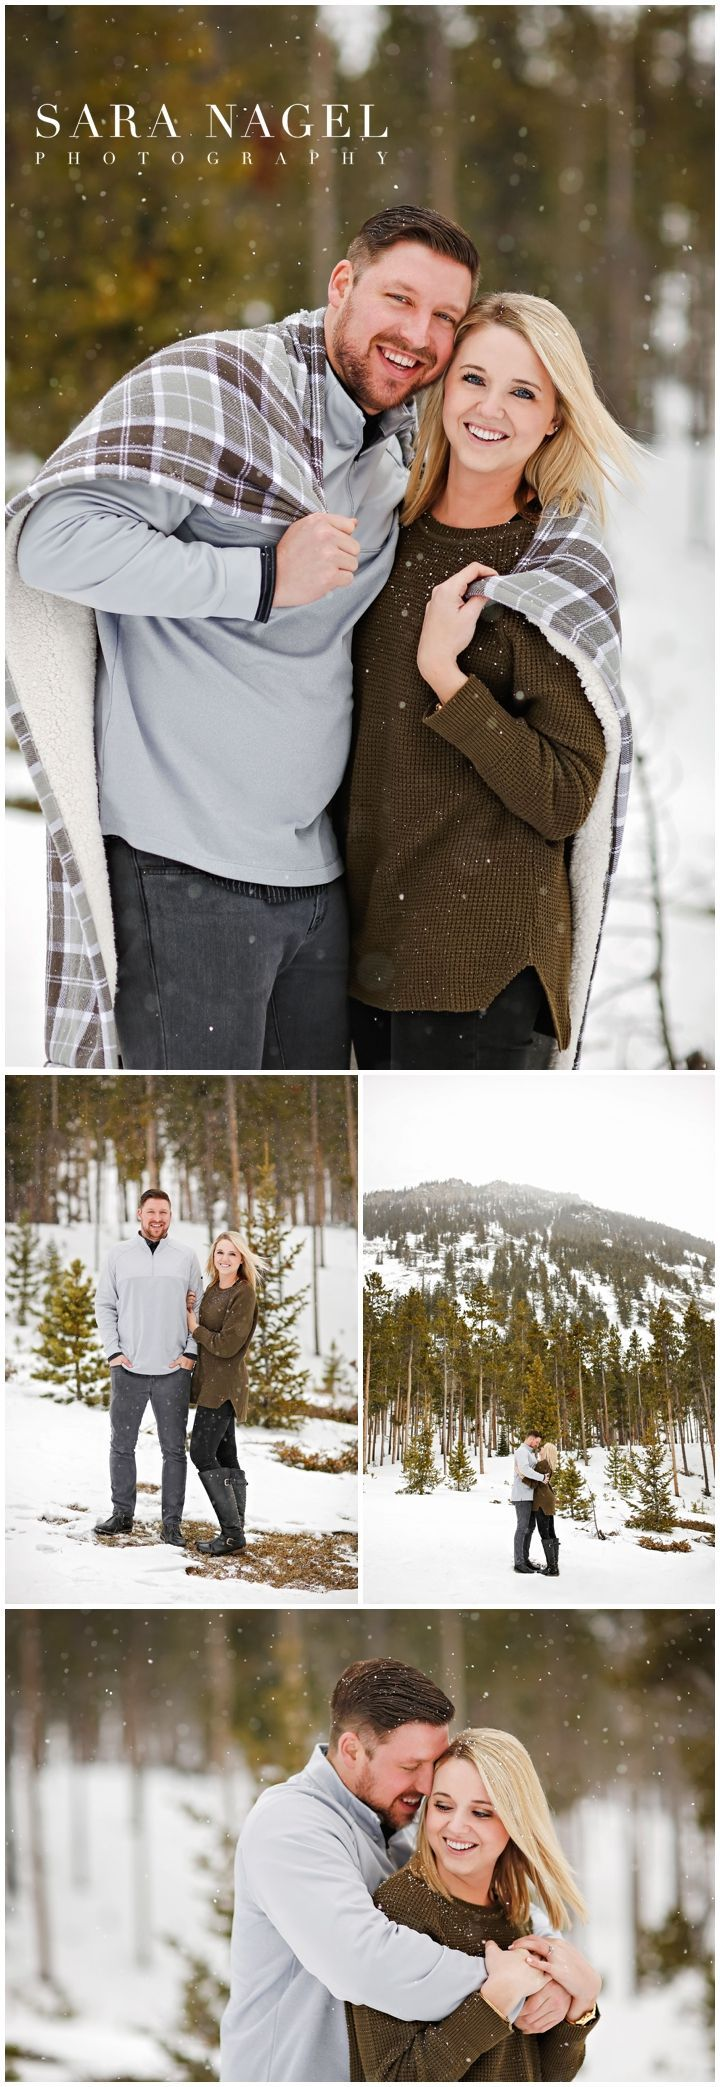 Outdoor Engagement Photo Ideas & Poses - Winter Session in the Mountains - Snow ... -  Outdoor Engagement Photo Ideas & Poses – Winter Session in the Mountains – Snow – Pine Trees  - #bohoEngagementPhotos #Engagement #EngagementPhotosathome #EngagementPhotoscasual #EngagementPhotosdowntown #EngagementPhotosprops #EngagementPhotossnow #EngagementPhotosvintage #Ideas #Mountains #Outdoor #photo #Poses #Session #snow #urbanEngagementPhotos #Winter